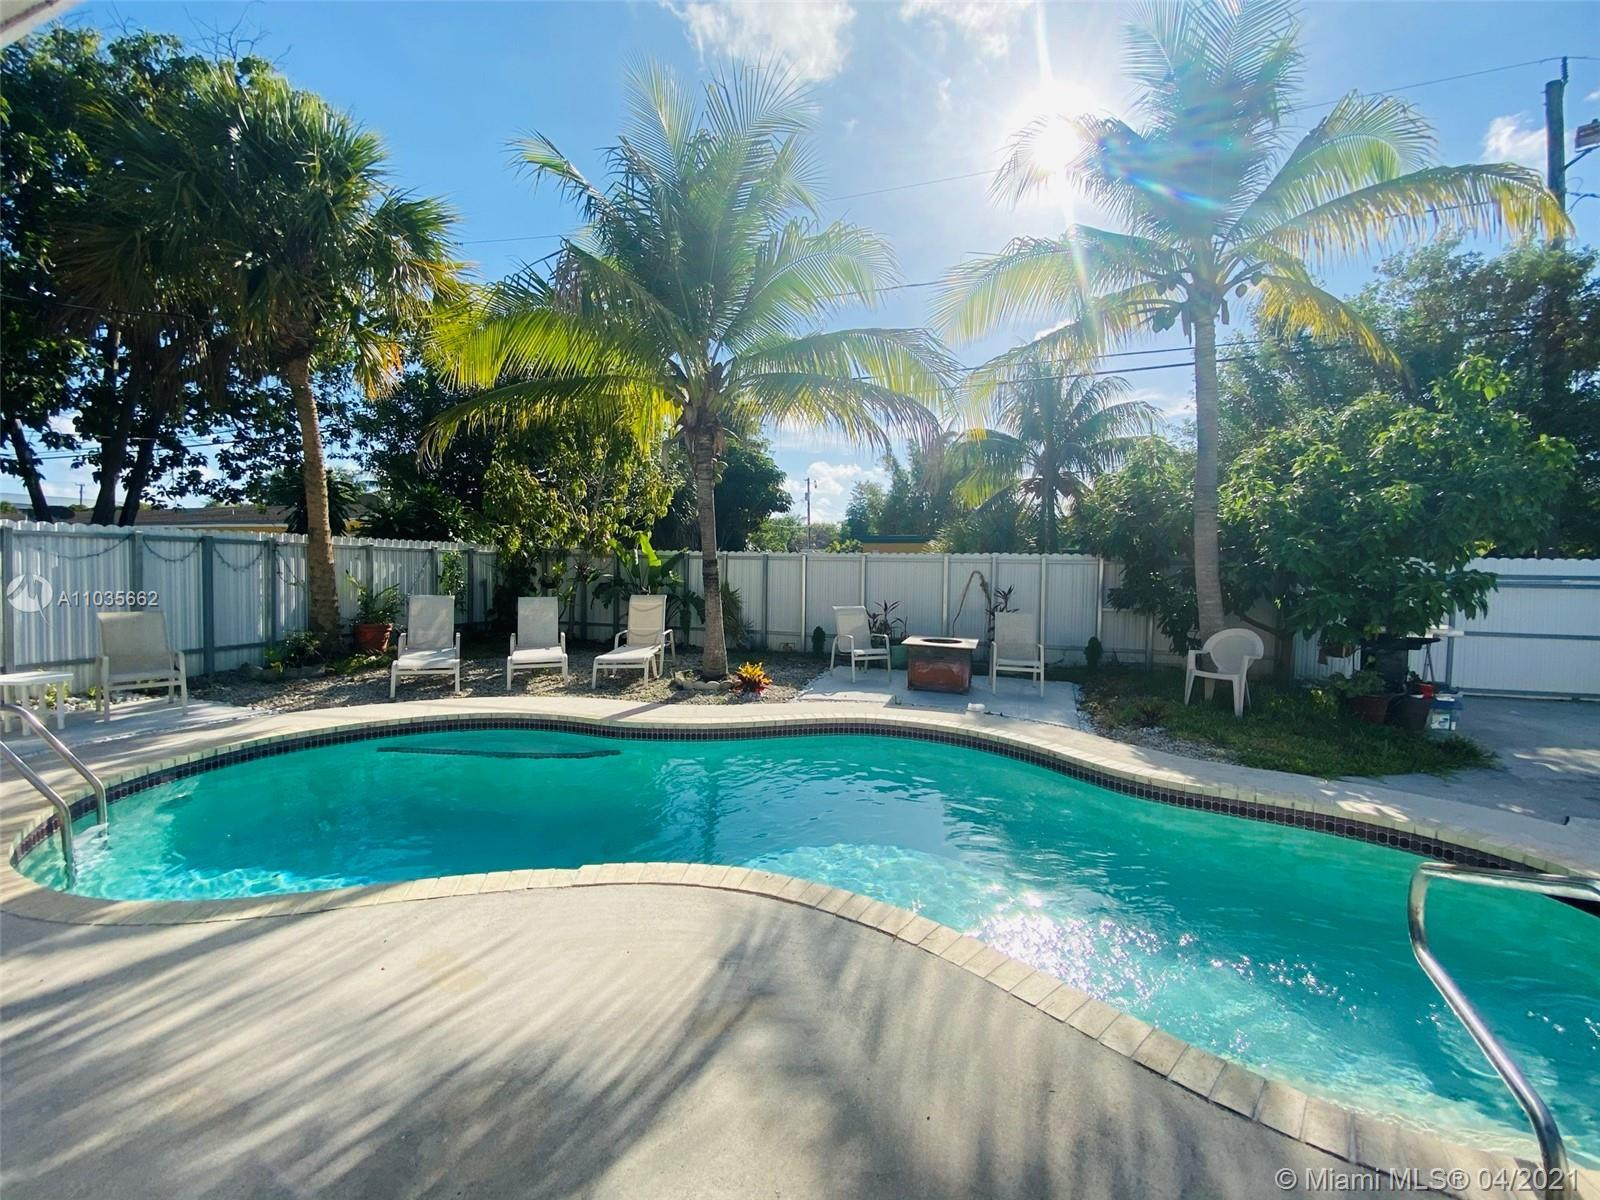 Tropical paradise - minutes away from shopping and entertainment, located on a quiet street just off